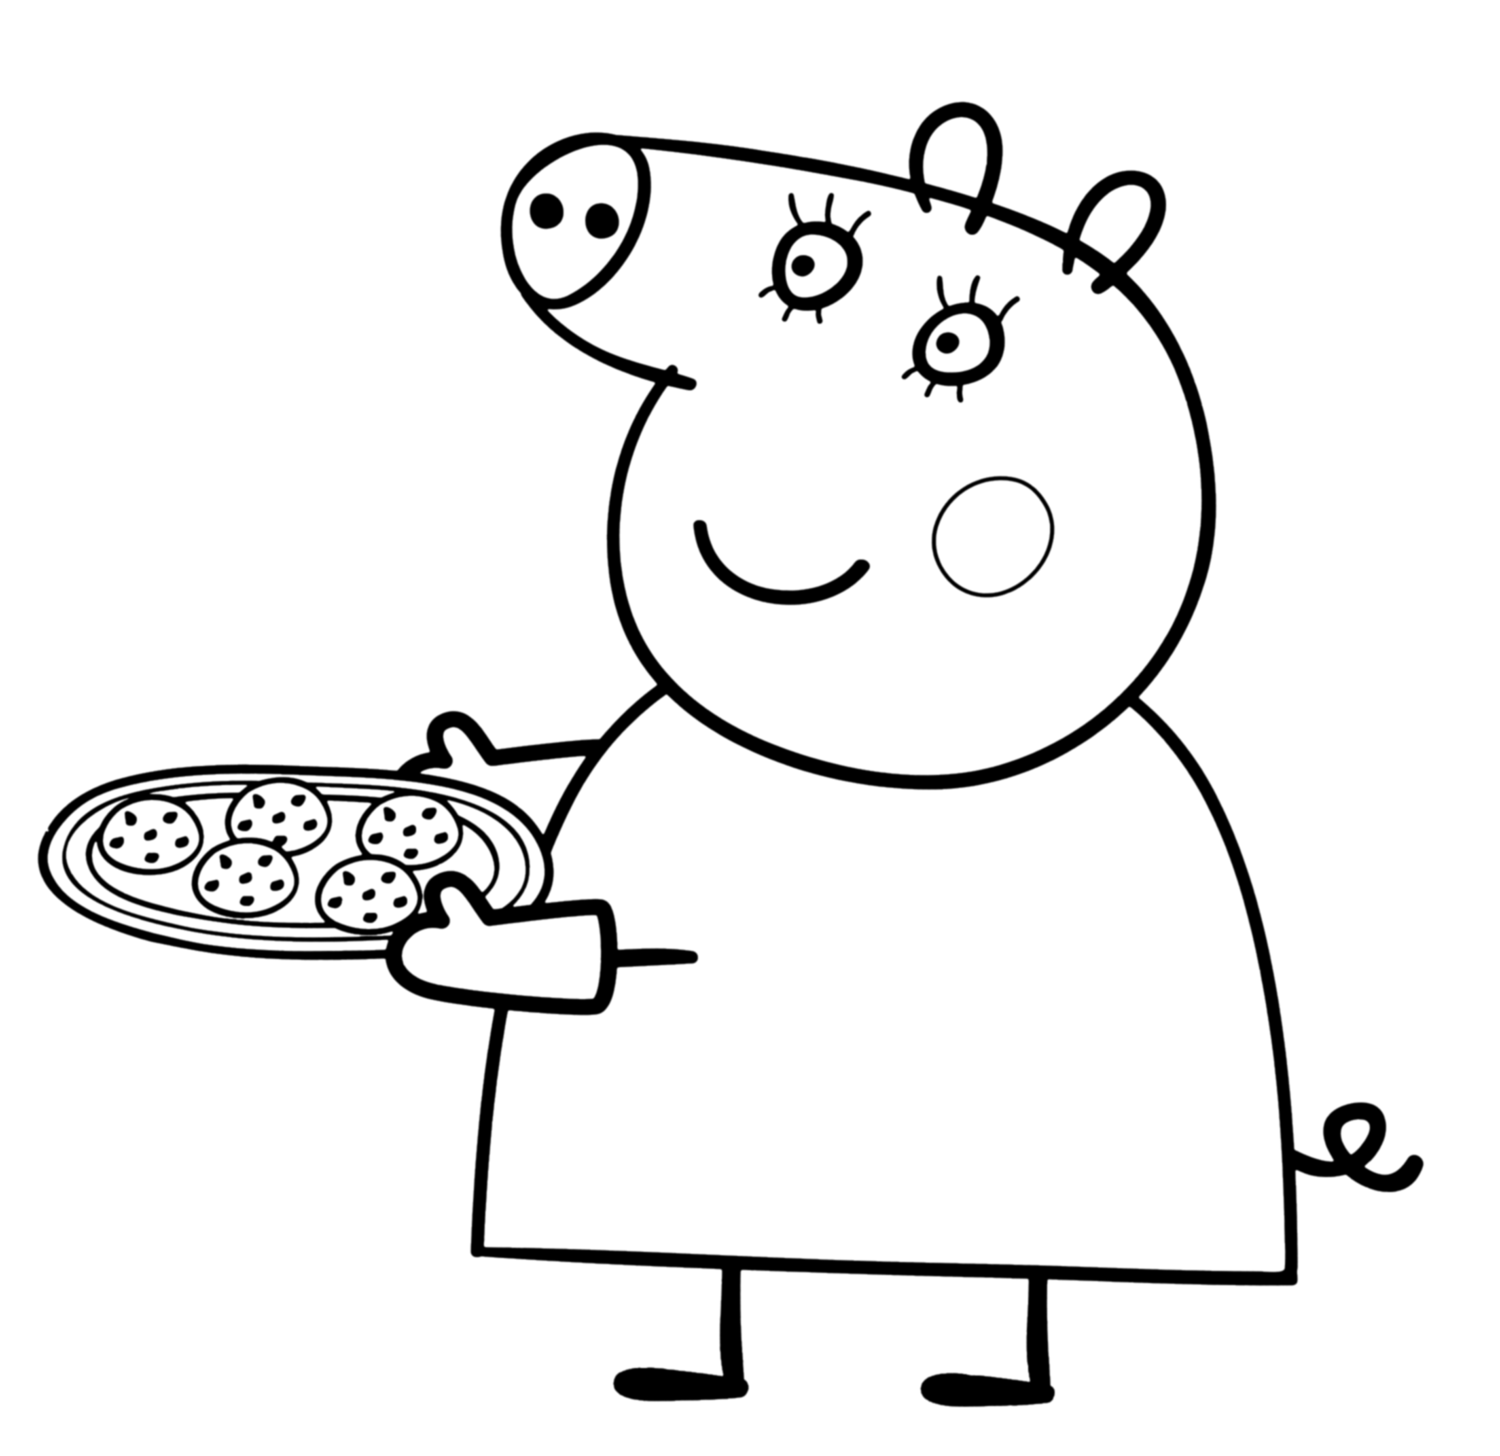 mummy pig coloring page mummy pig in winter suit coloring page free printable pig page coloring mummy